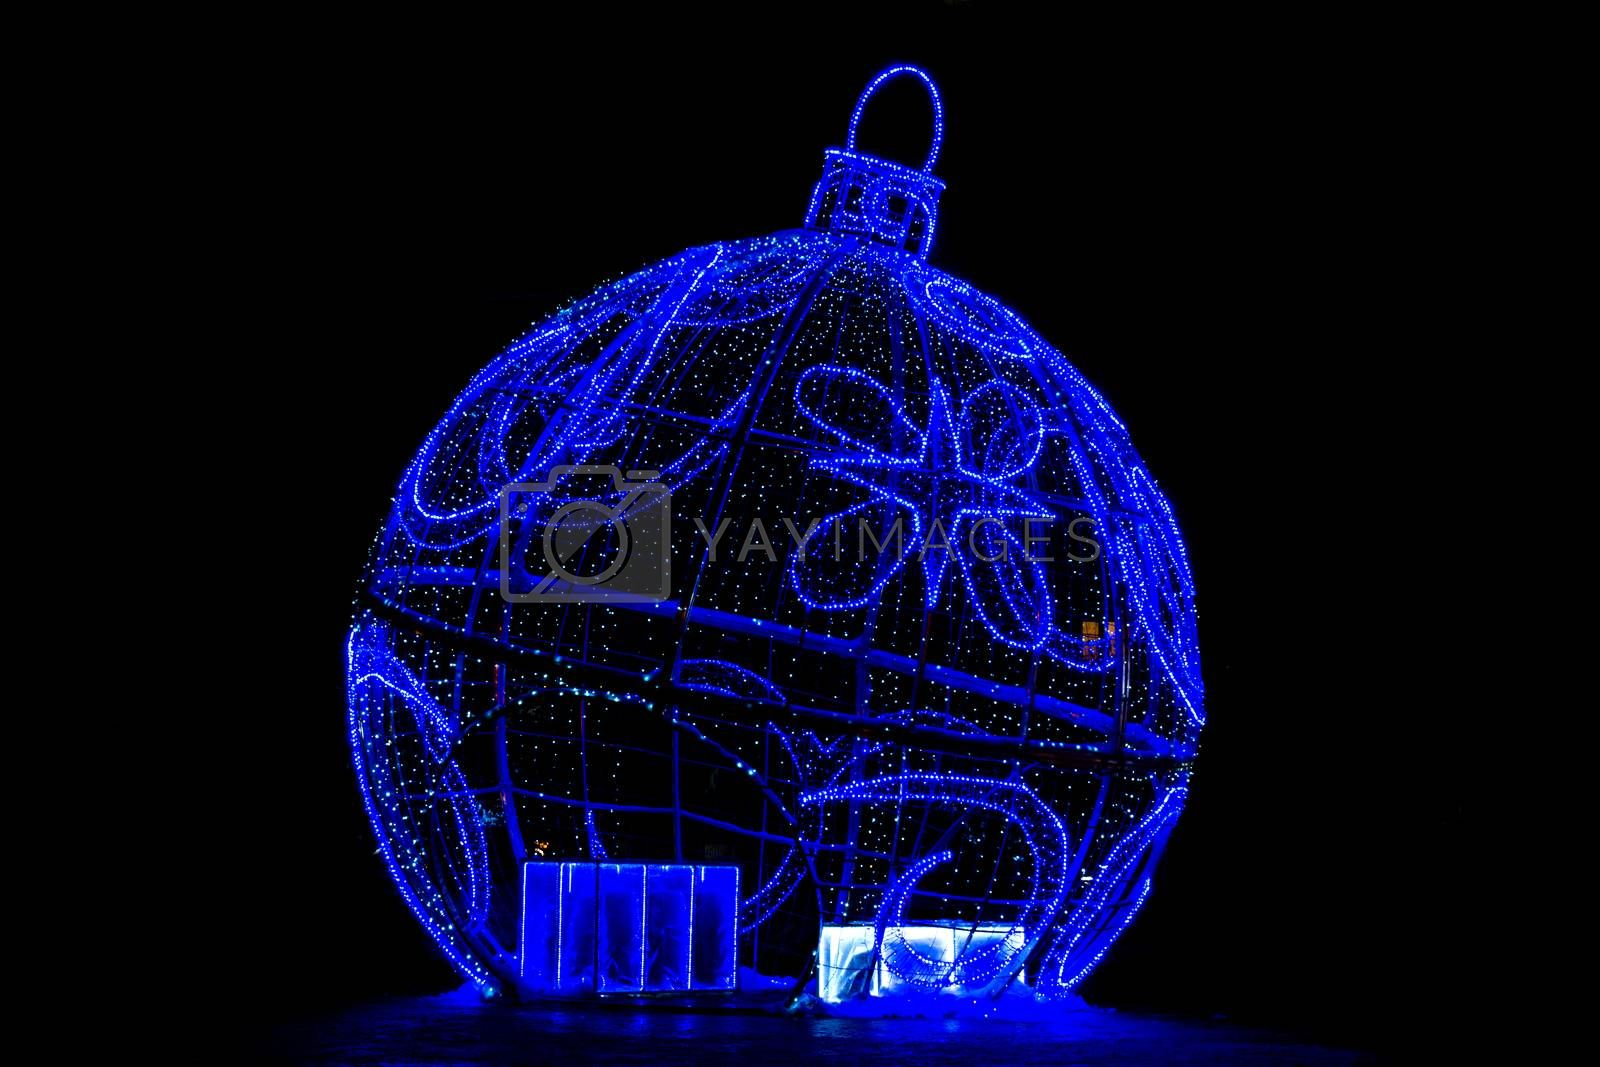 The photo shows a Christmas Toy of bulbs